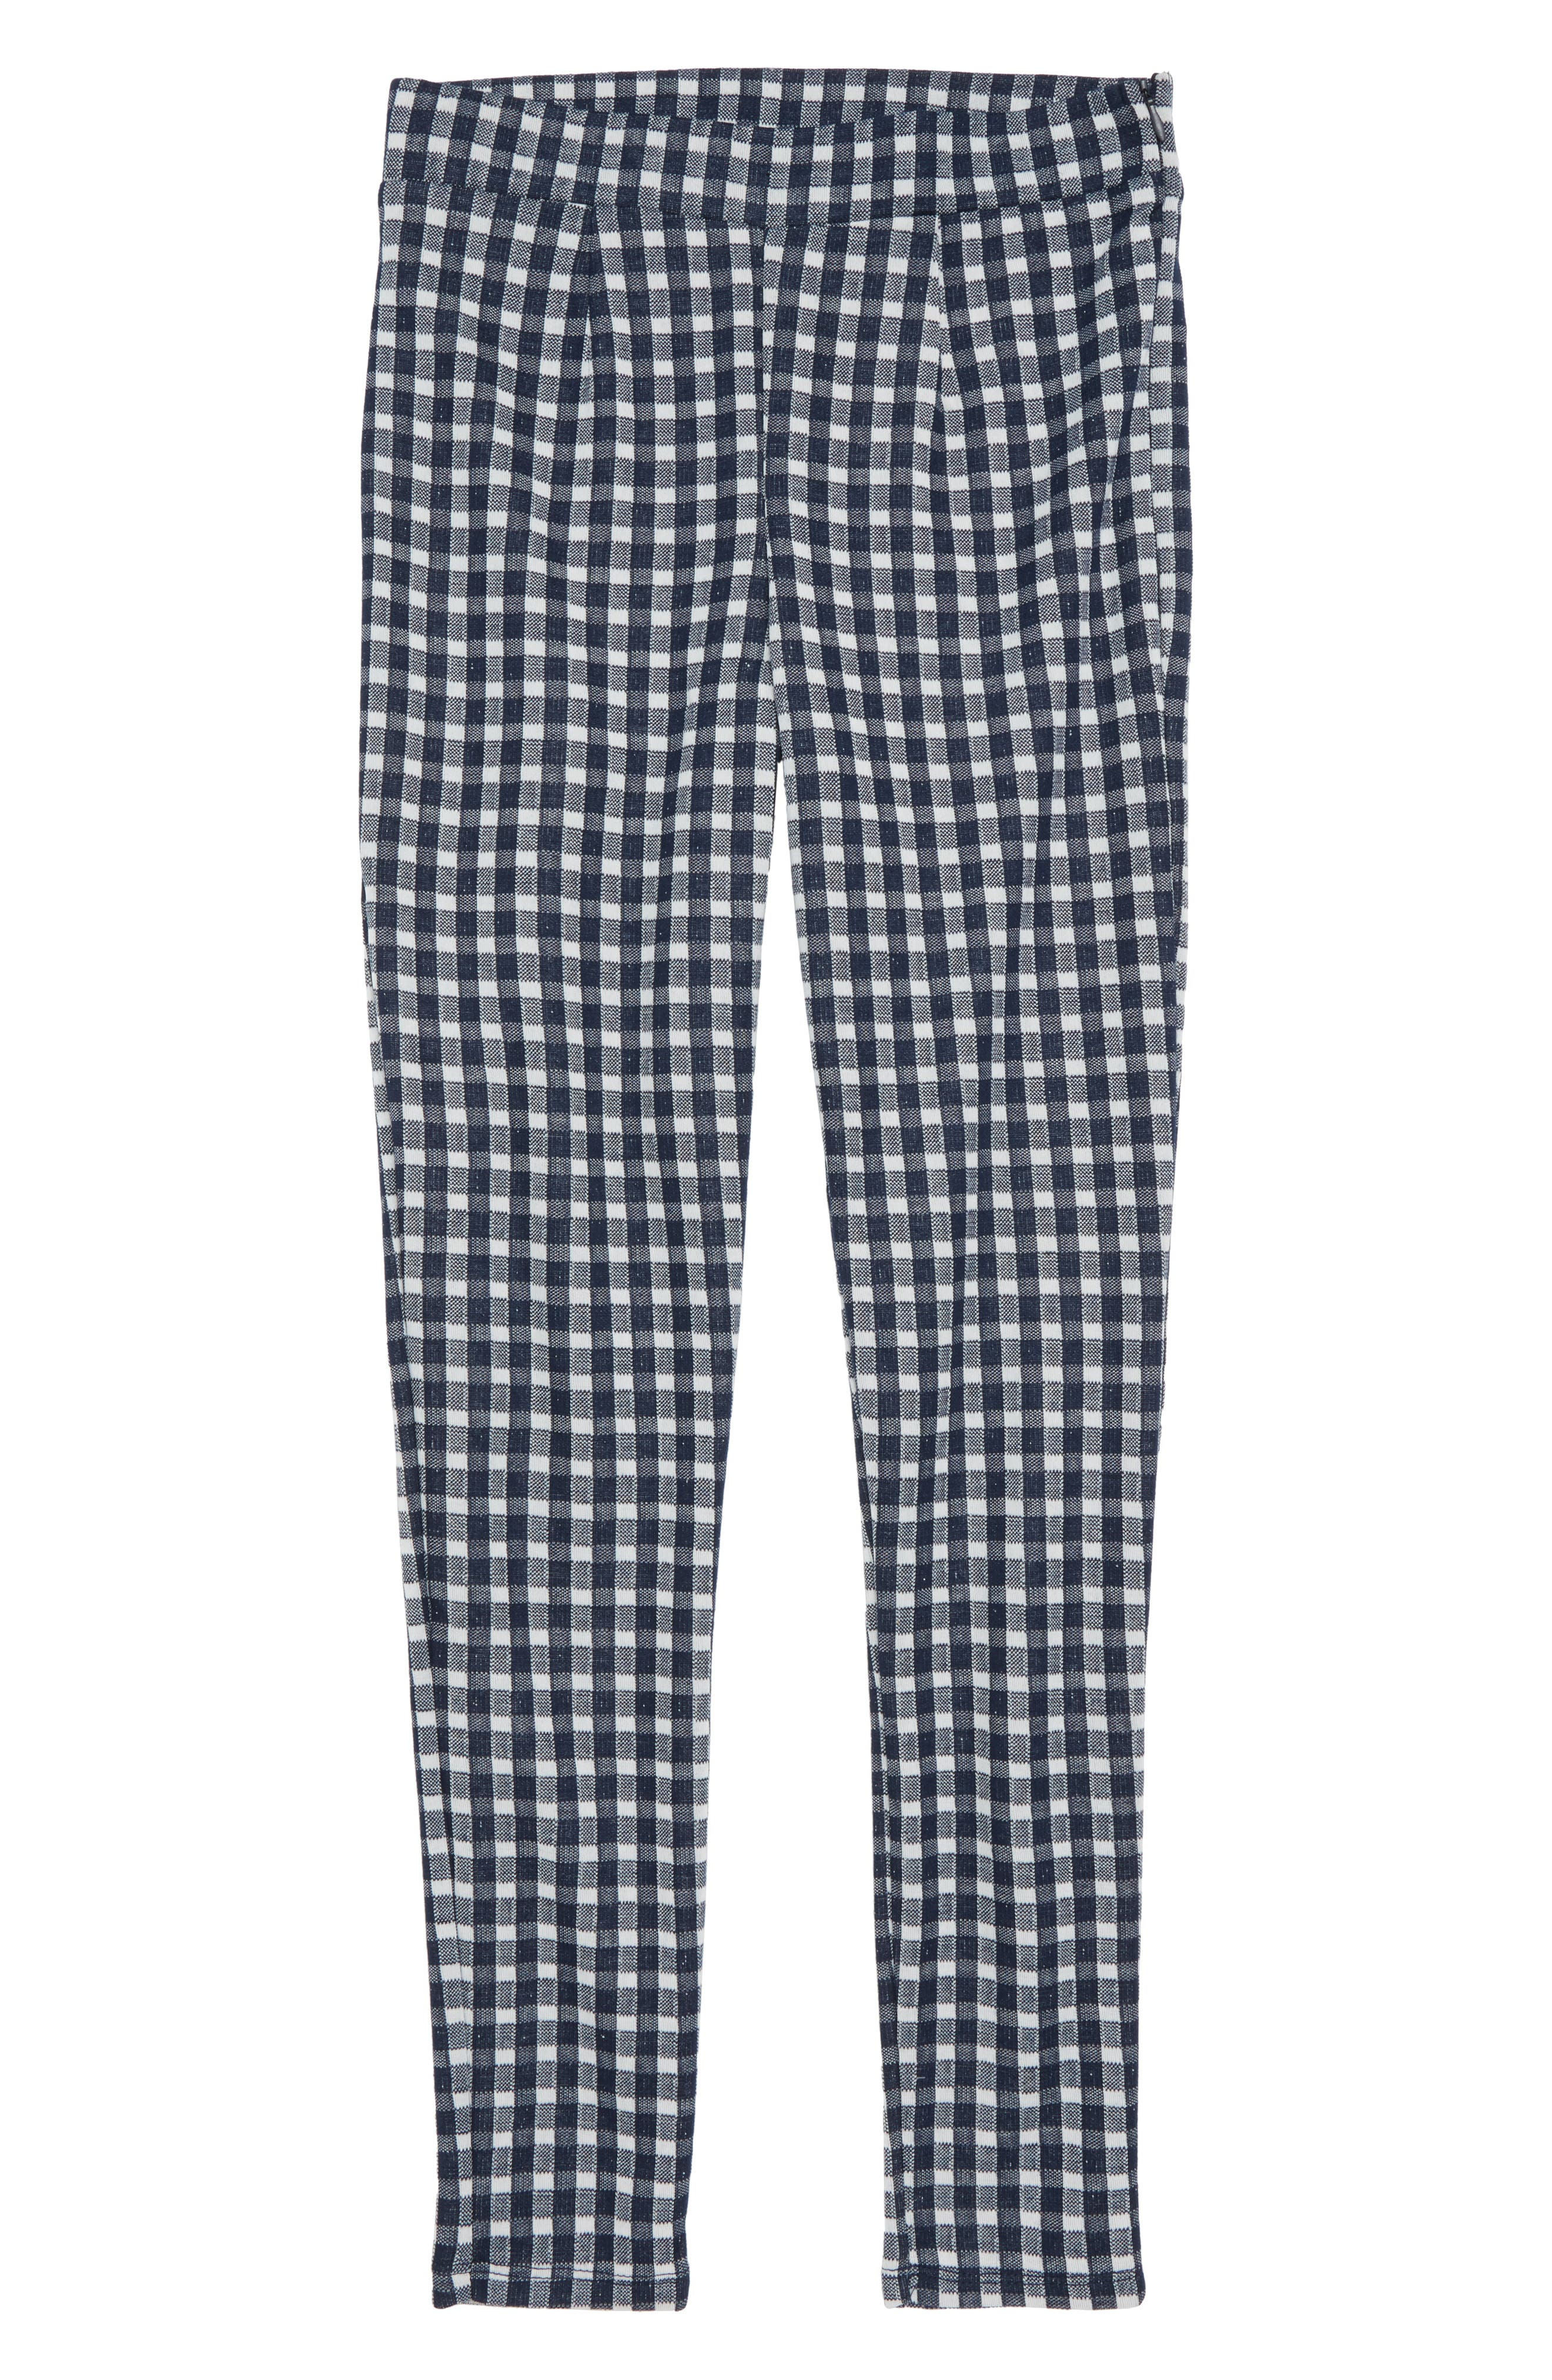 Plaid Pants,                         Main,                         color, 410